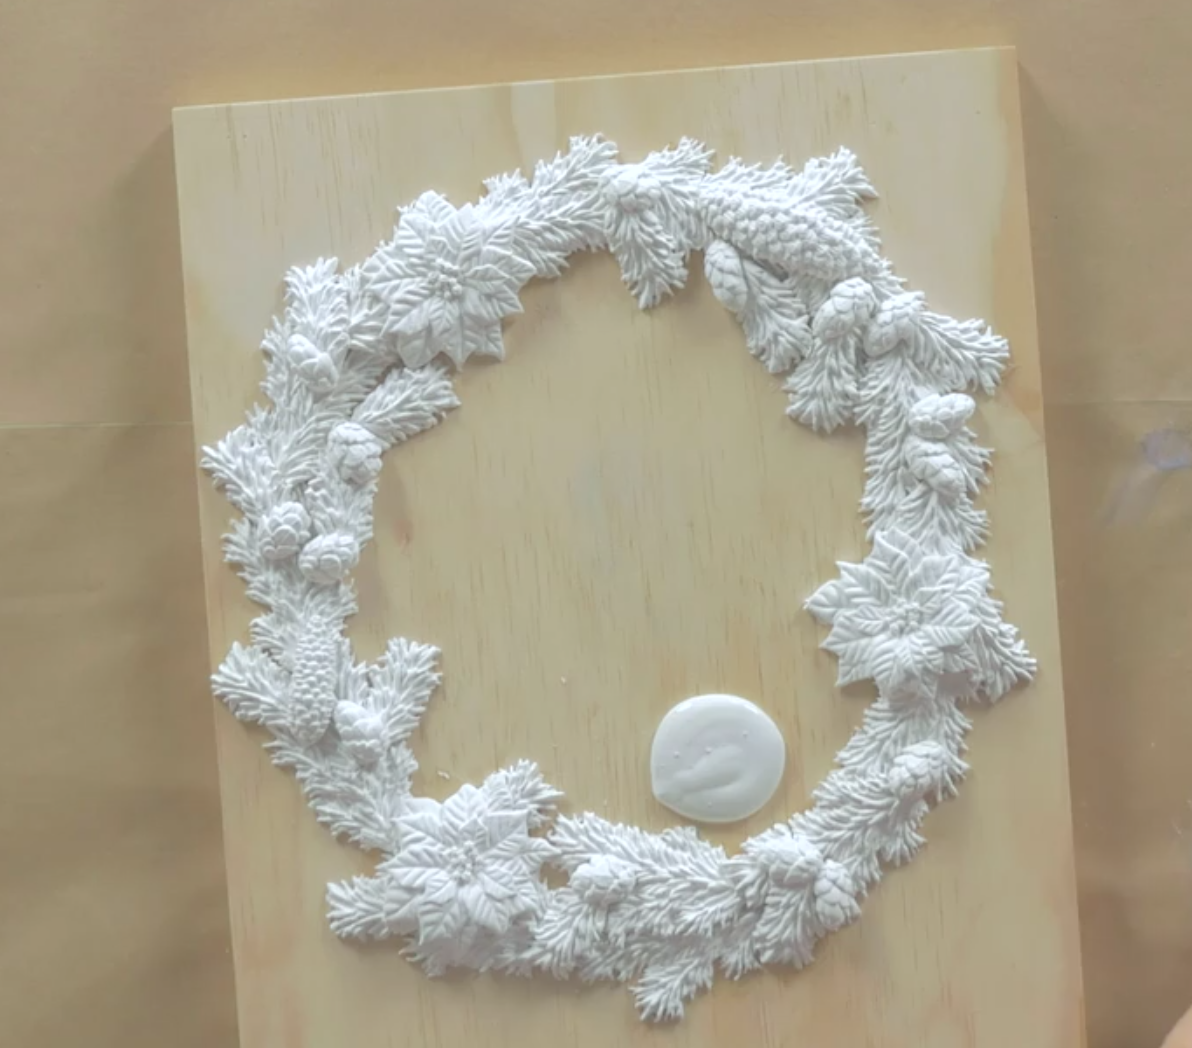 use chalk paint to coat the diy Christmas wall decor